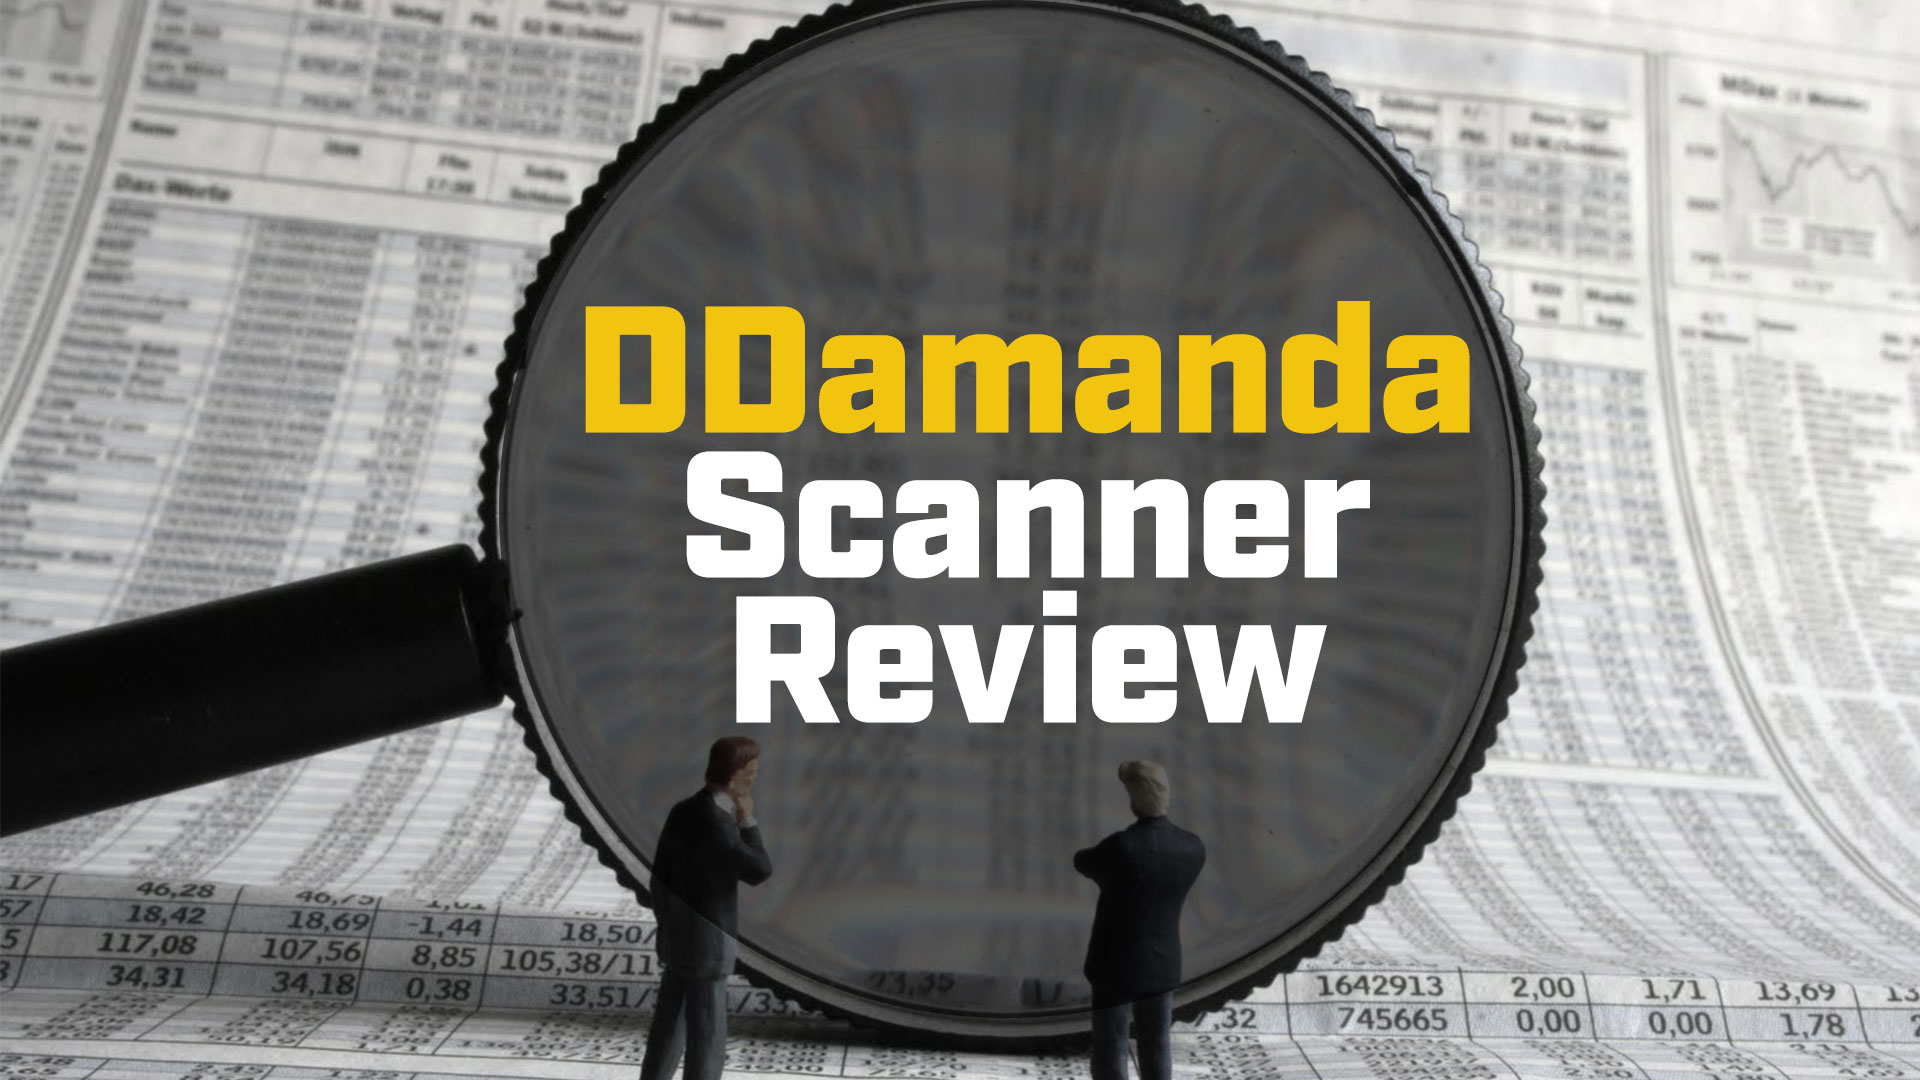 DDamanda Scanner Review